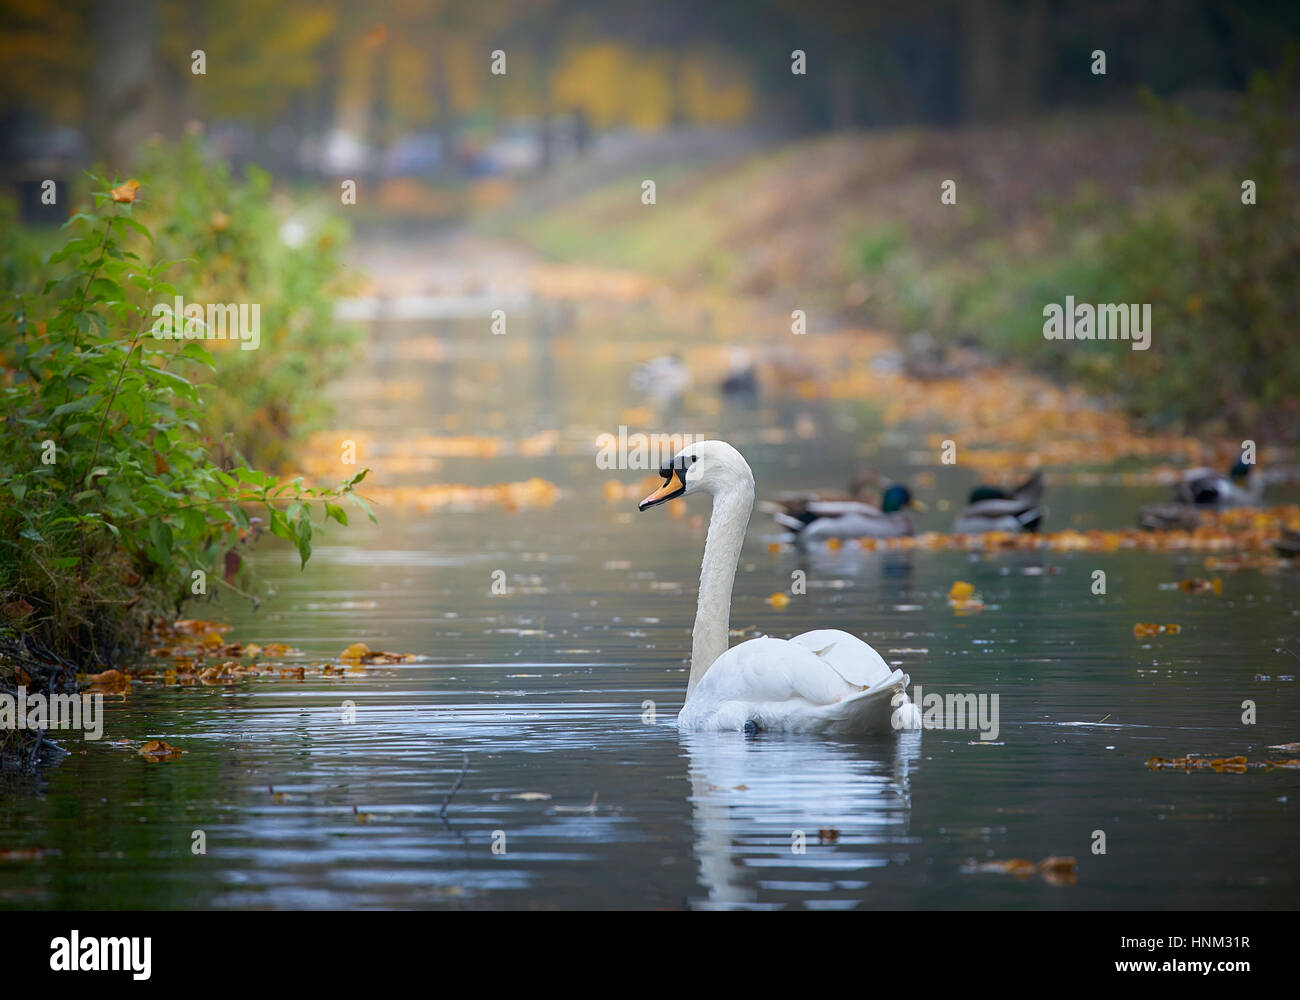 A cob swan swimming on a river in autumn - Stock Image